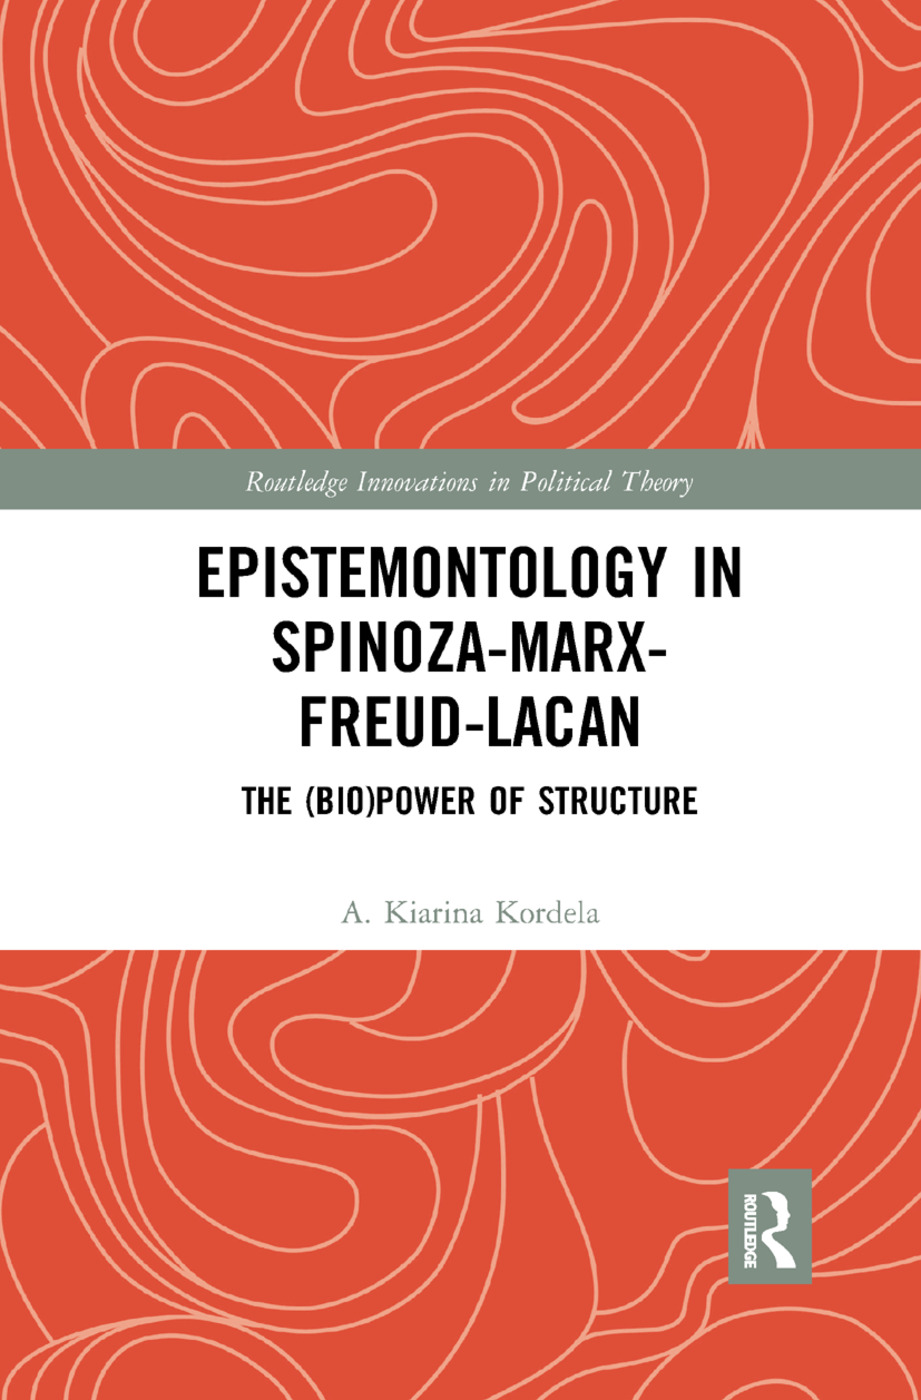 Epistemontology in Spinoza-Marx-Freud-Lacan: The (Bio)Power of Structure book cover